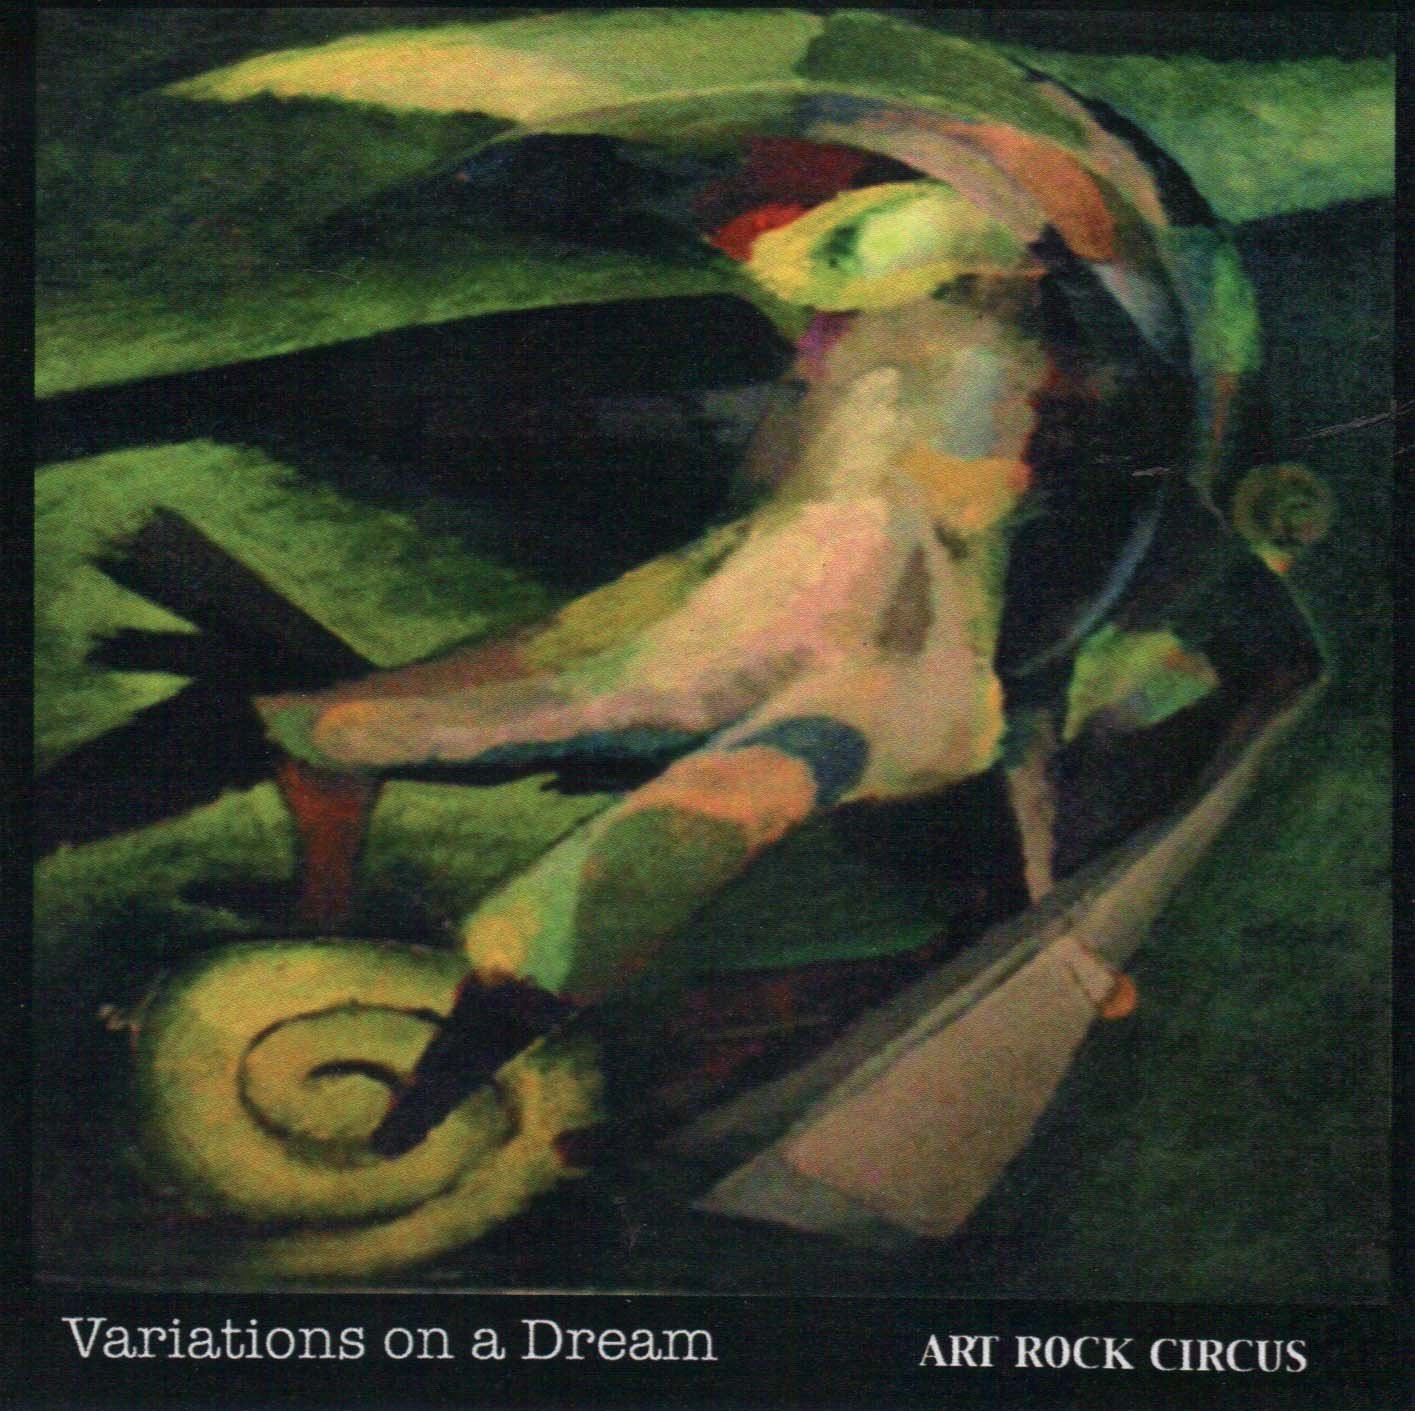 Variations on a Dream Cover art